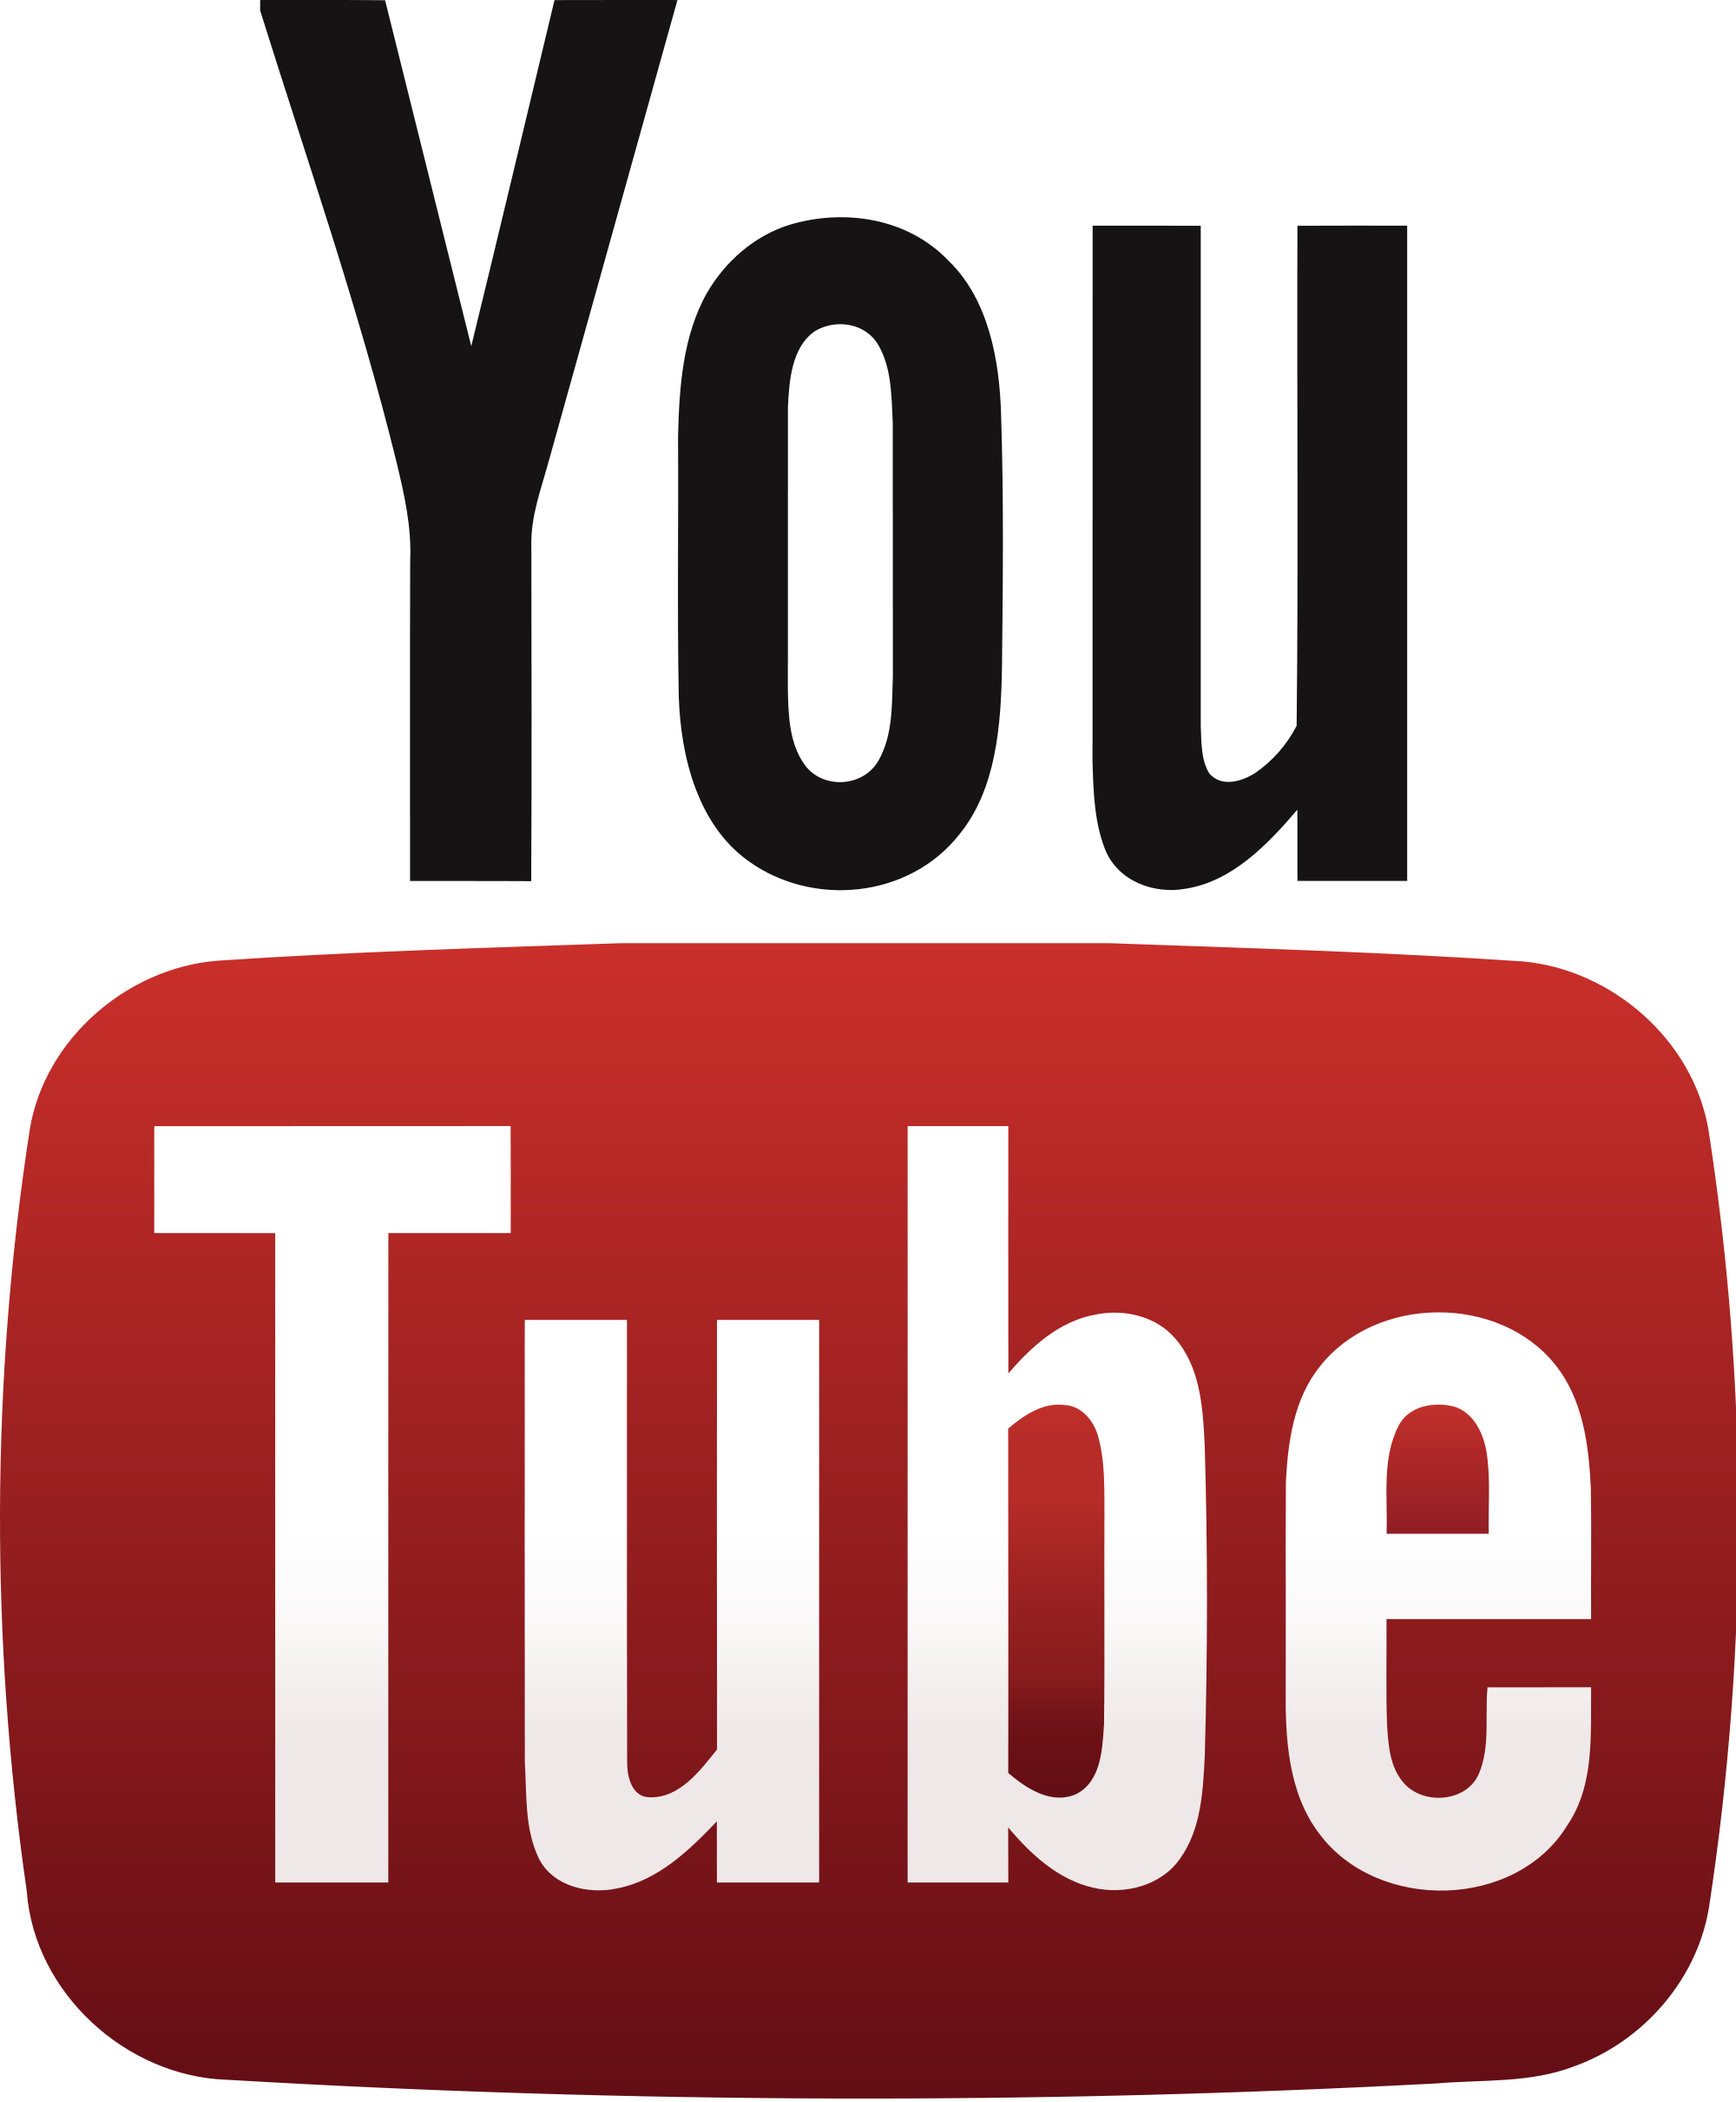 YouTube Transparent Background - Youtube PNG